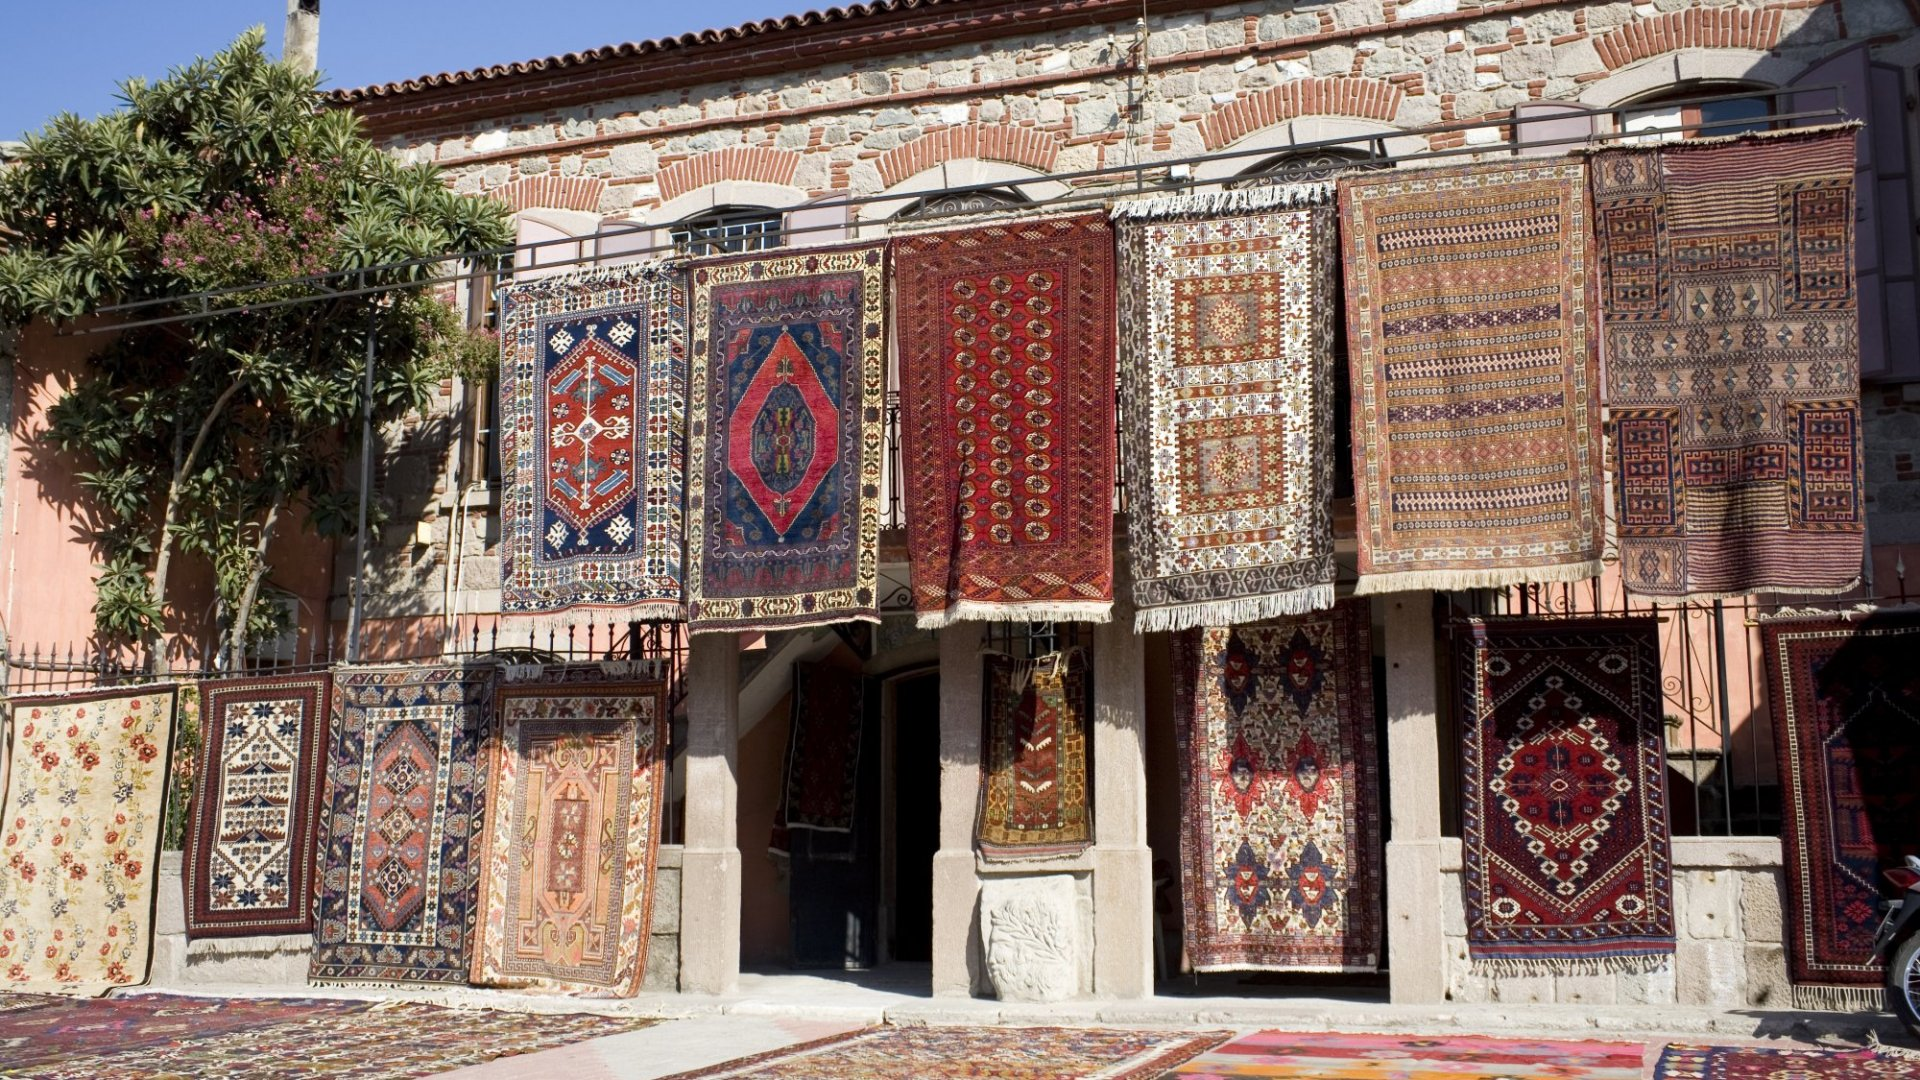 You learn a lot hustling Turkish rugs as a child.